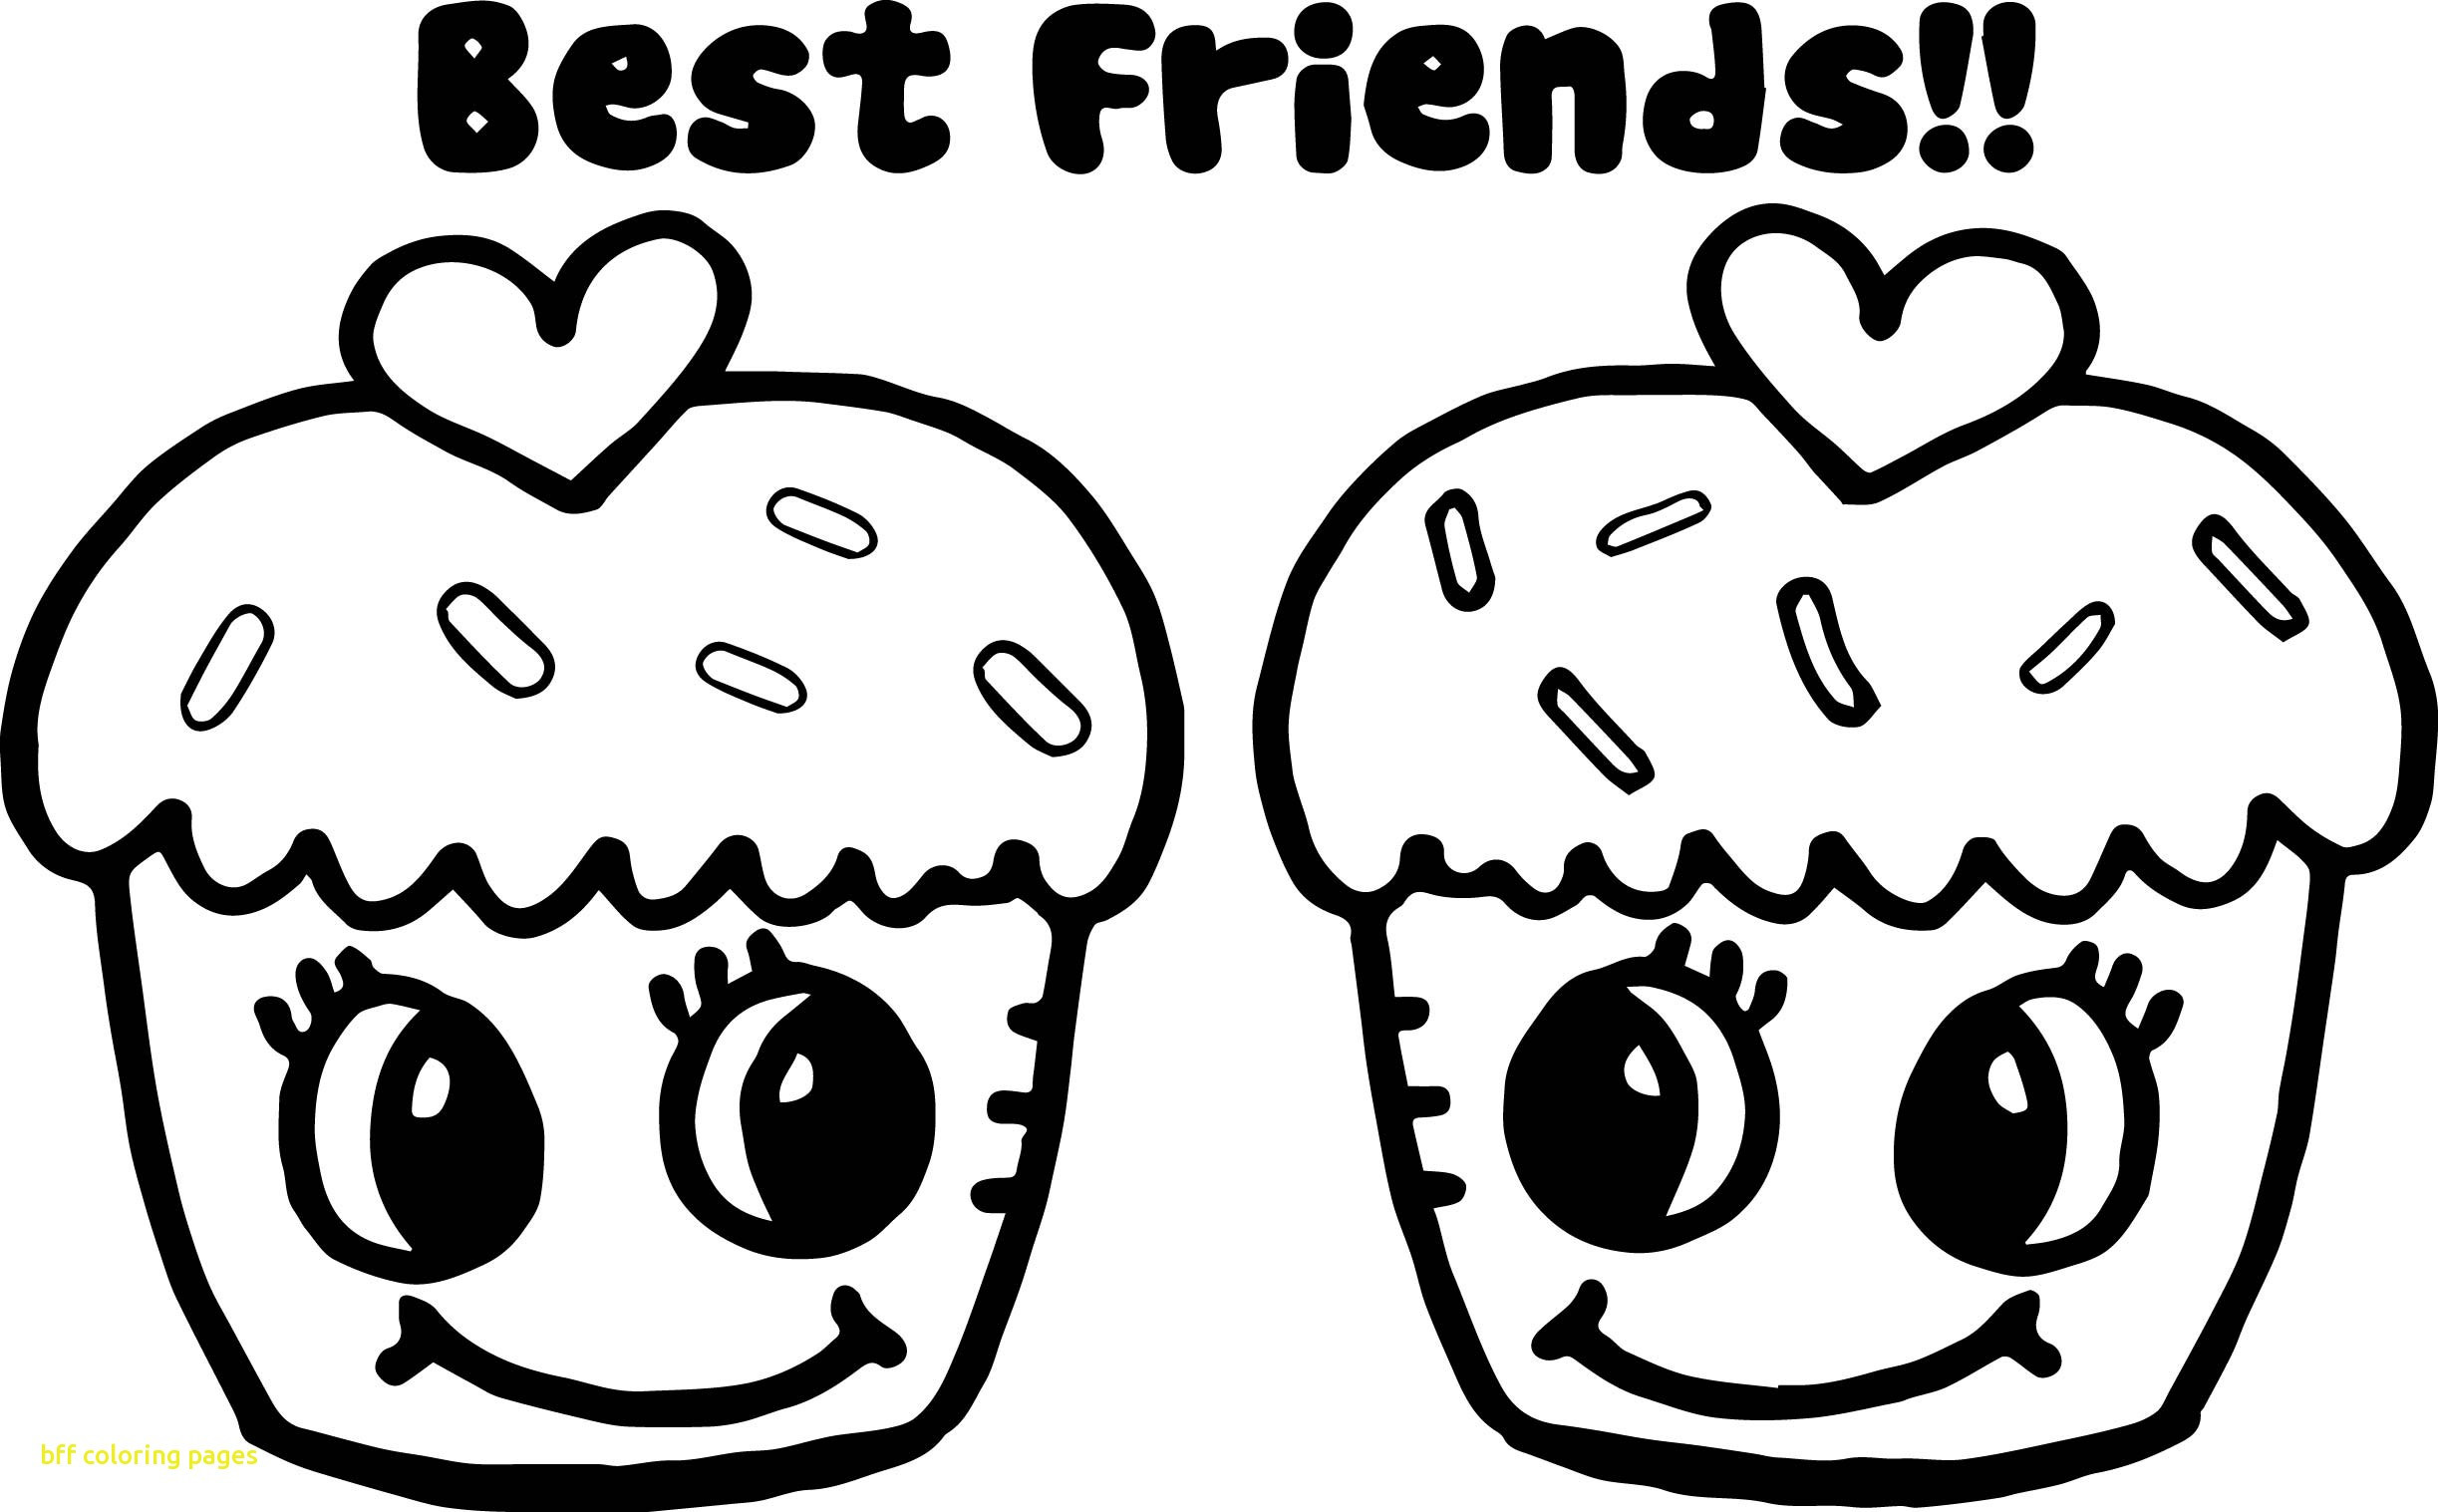 Friendship Coloring Pages For Girls  Now Best Friend Coloring Pages For Girls Bff With